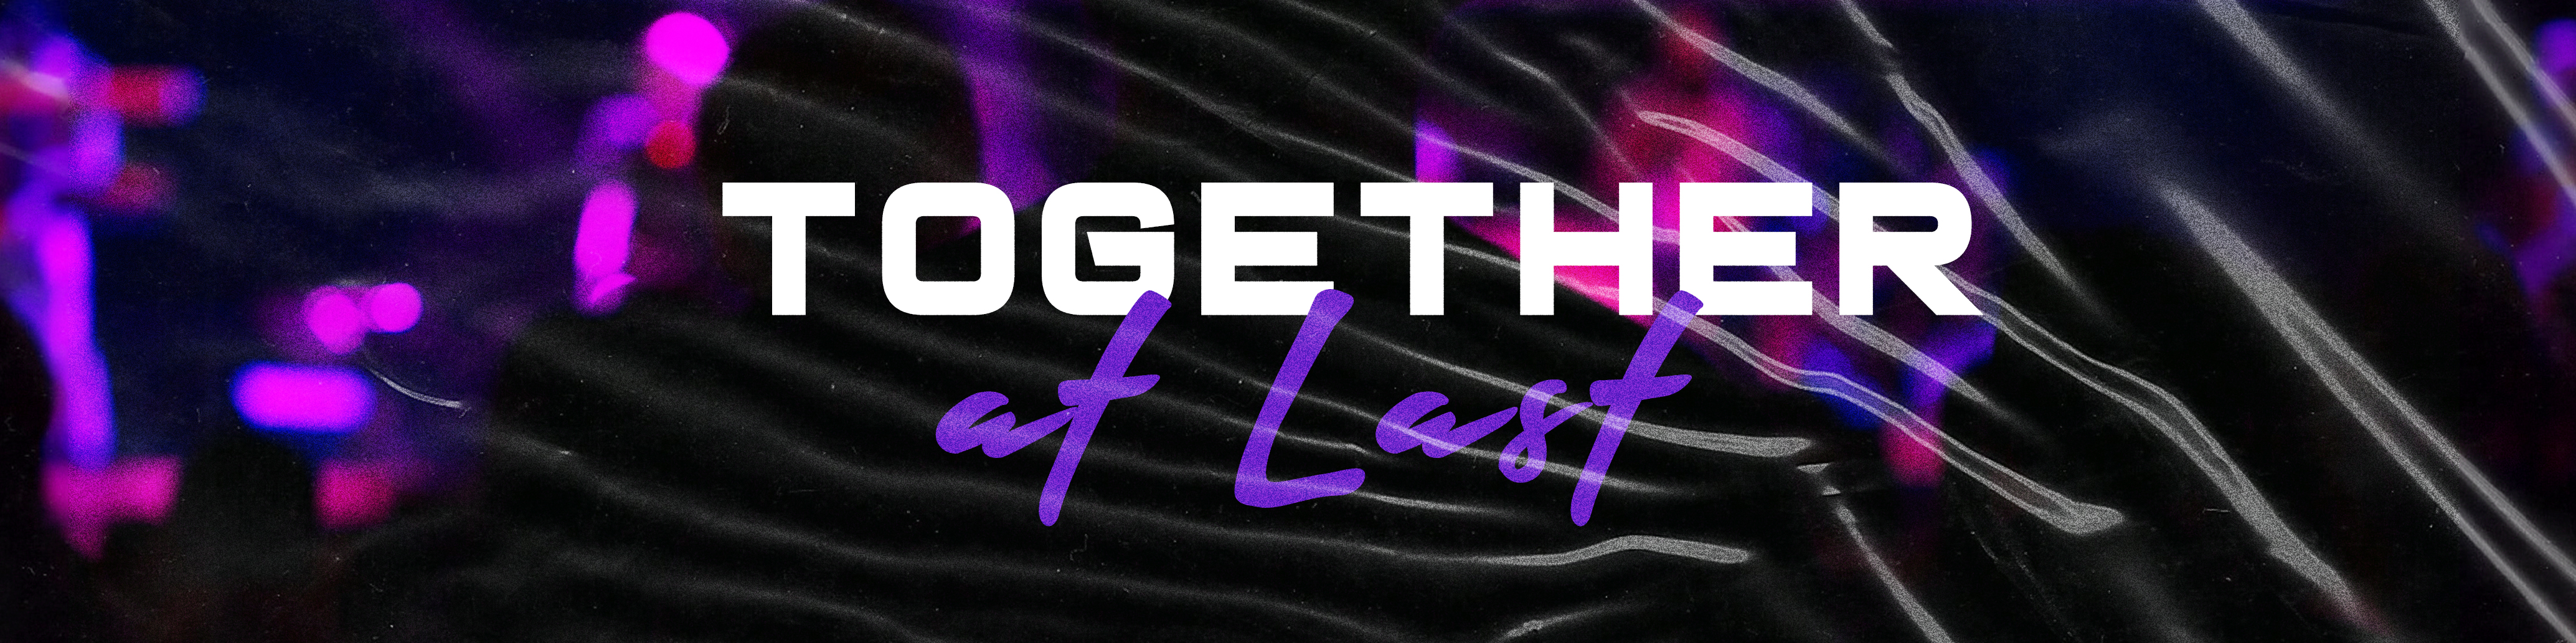 TOGETHER AT LAST web page